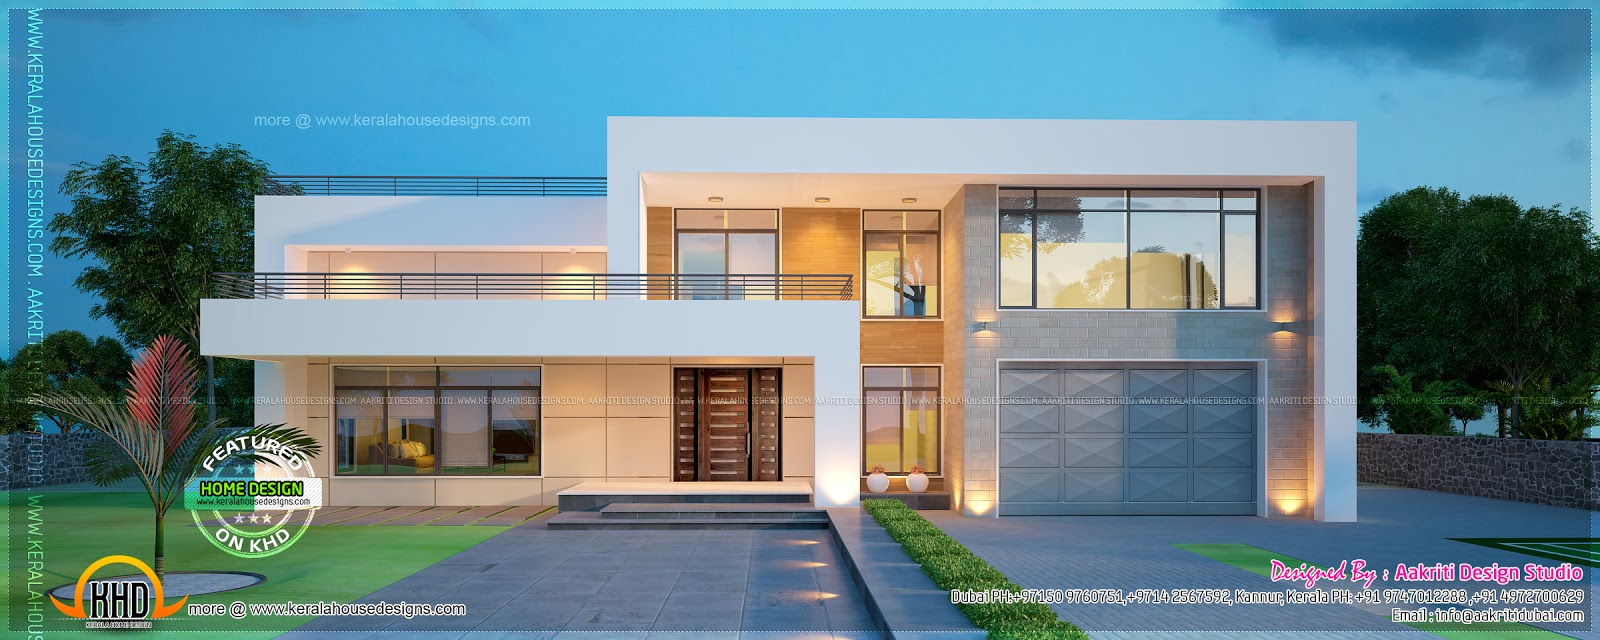 Design style modern contemporary new villa